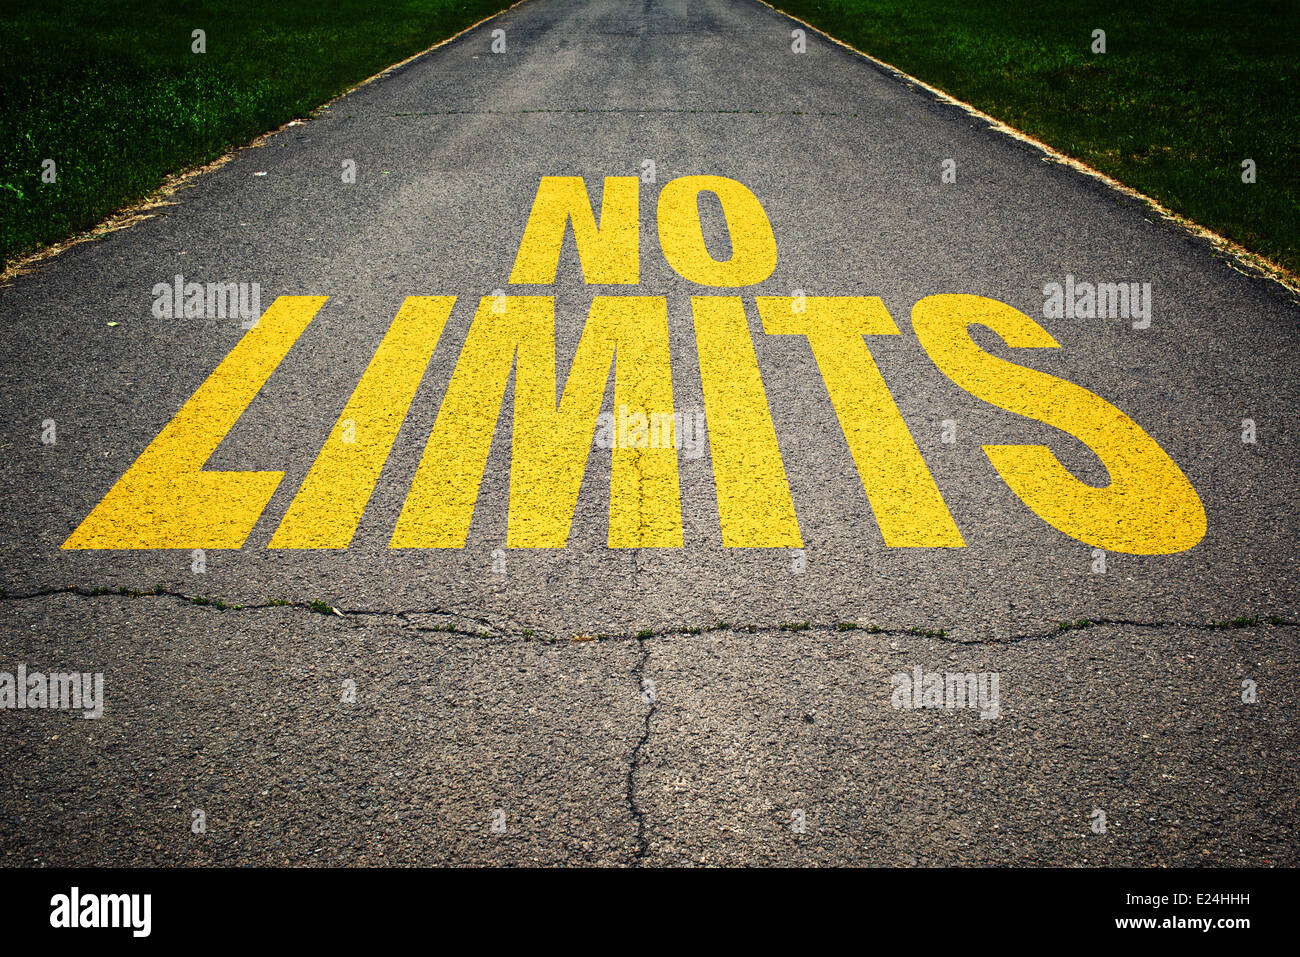 No Limits message on asphalt road. Concept of safe driving and preventing traffic accident. - Stock Image